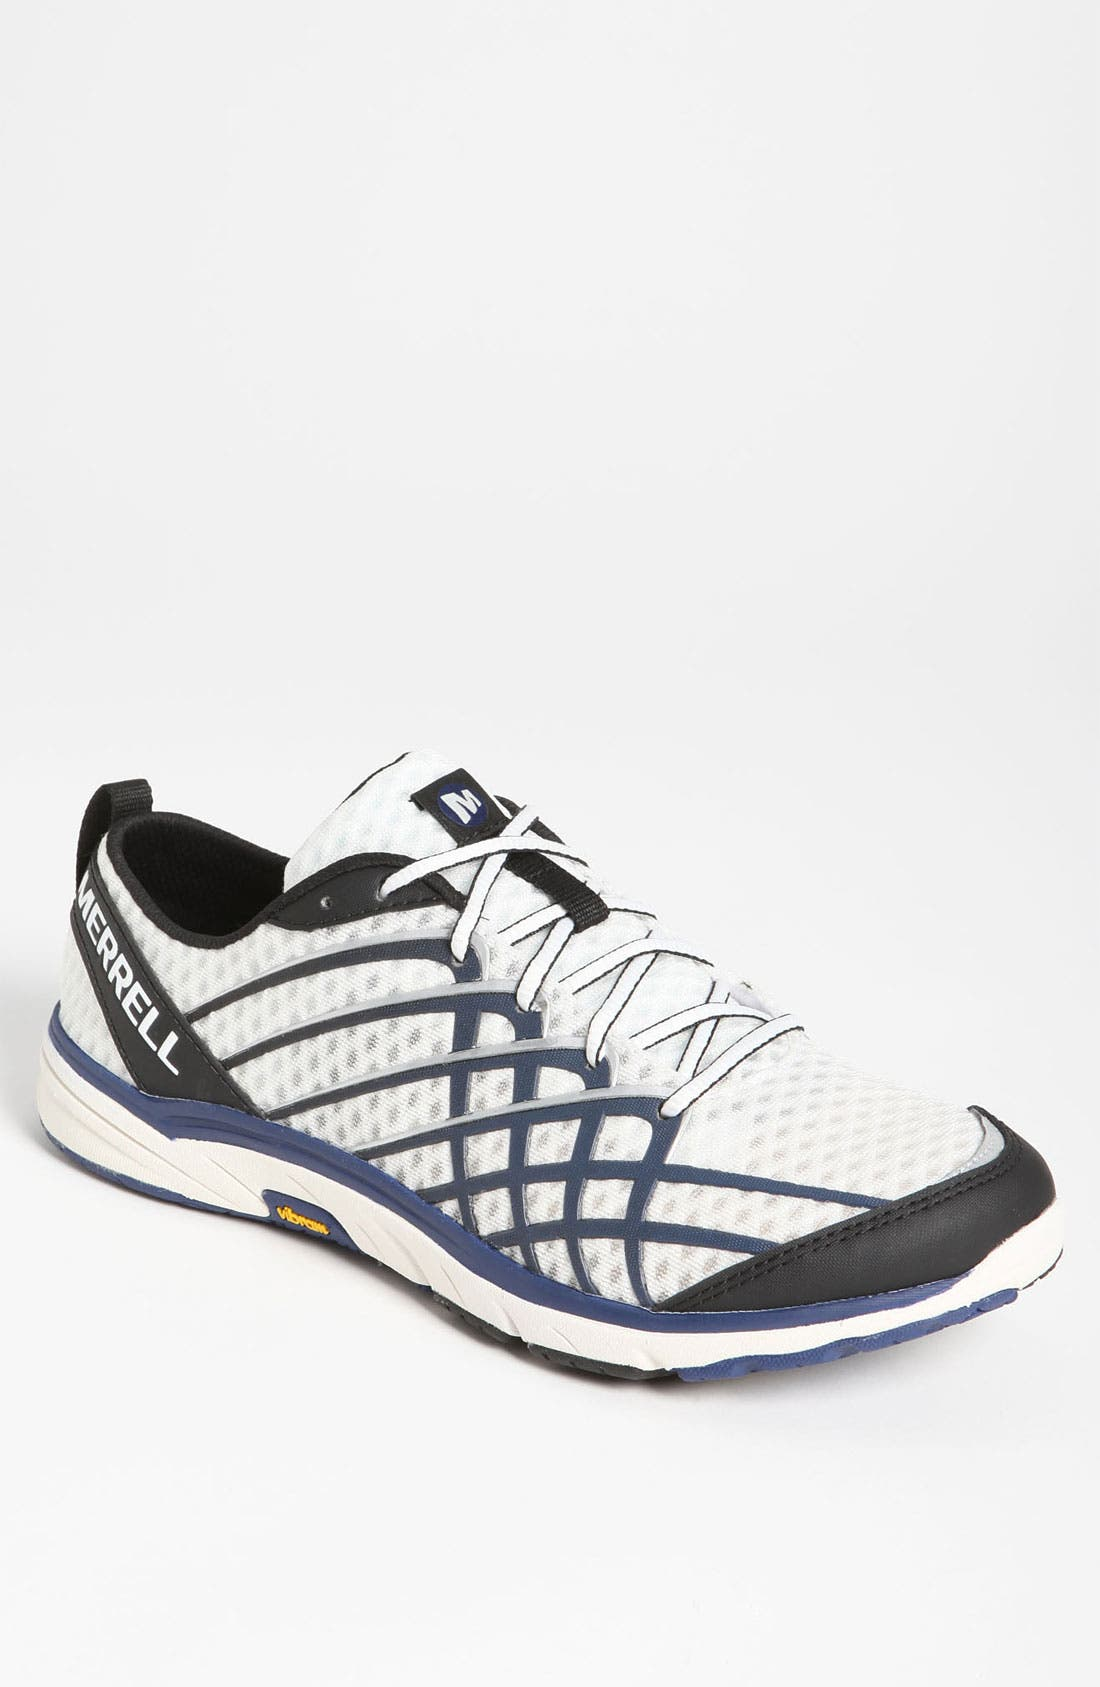 Main Image - Merrell 'Bare Access' Running Shoe (Men)